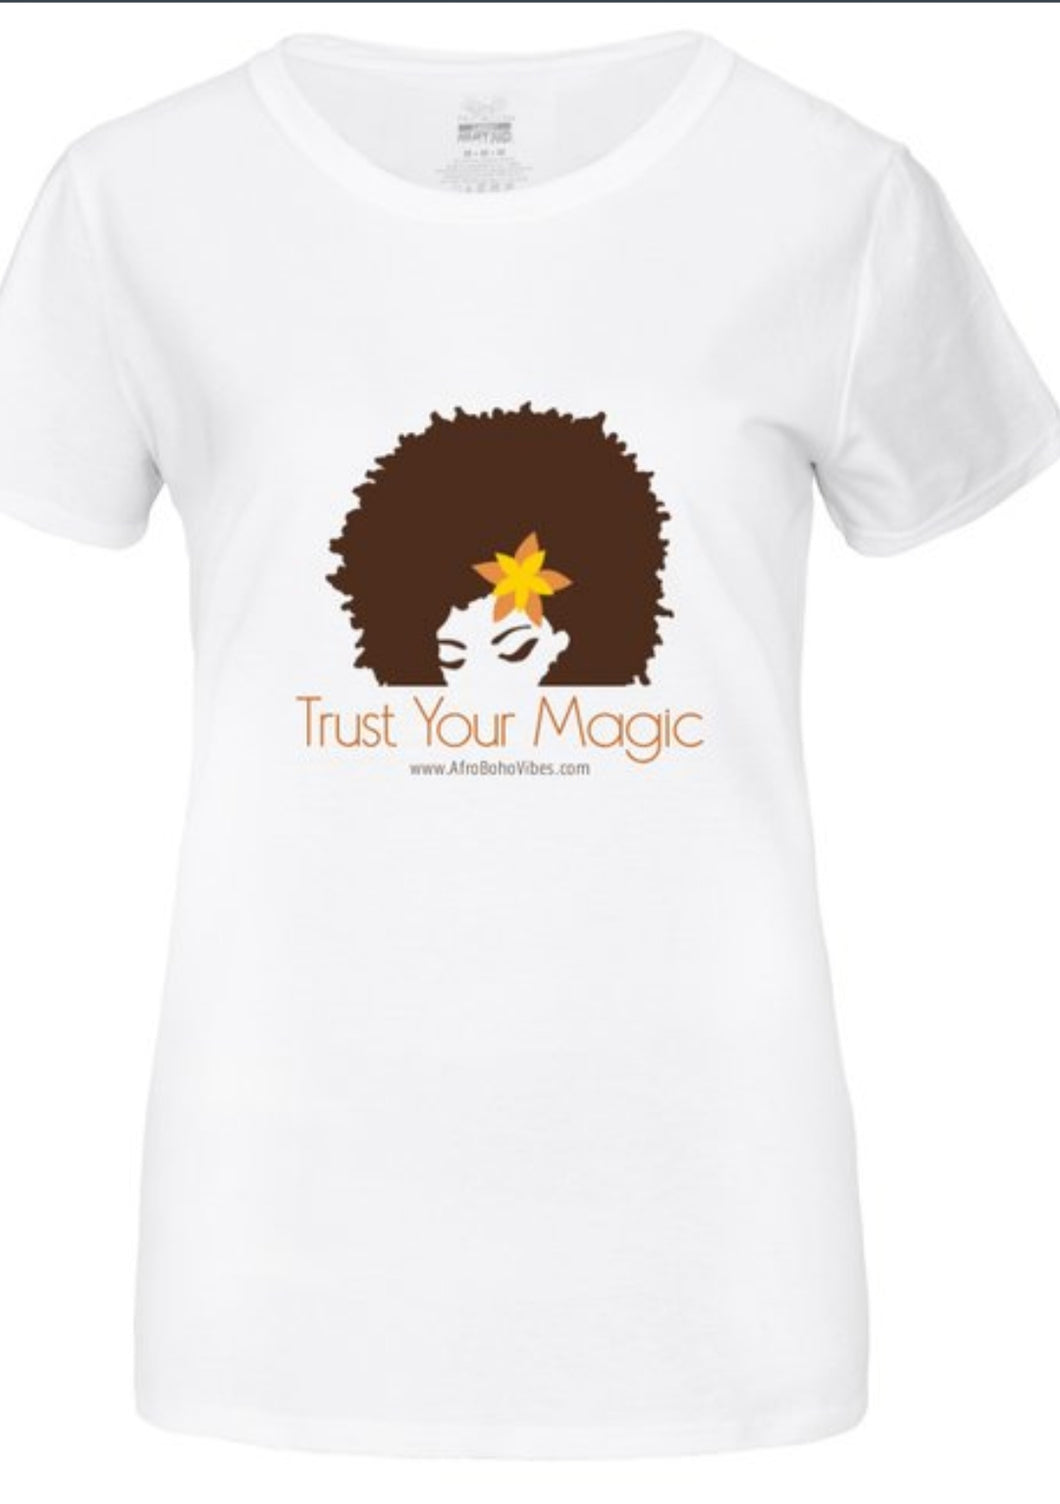 Trust Your Magic Tee - Afro Goddess White Tee